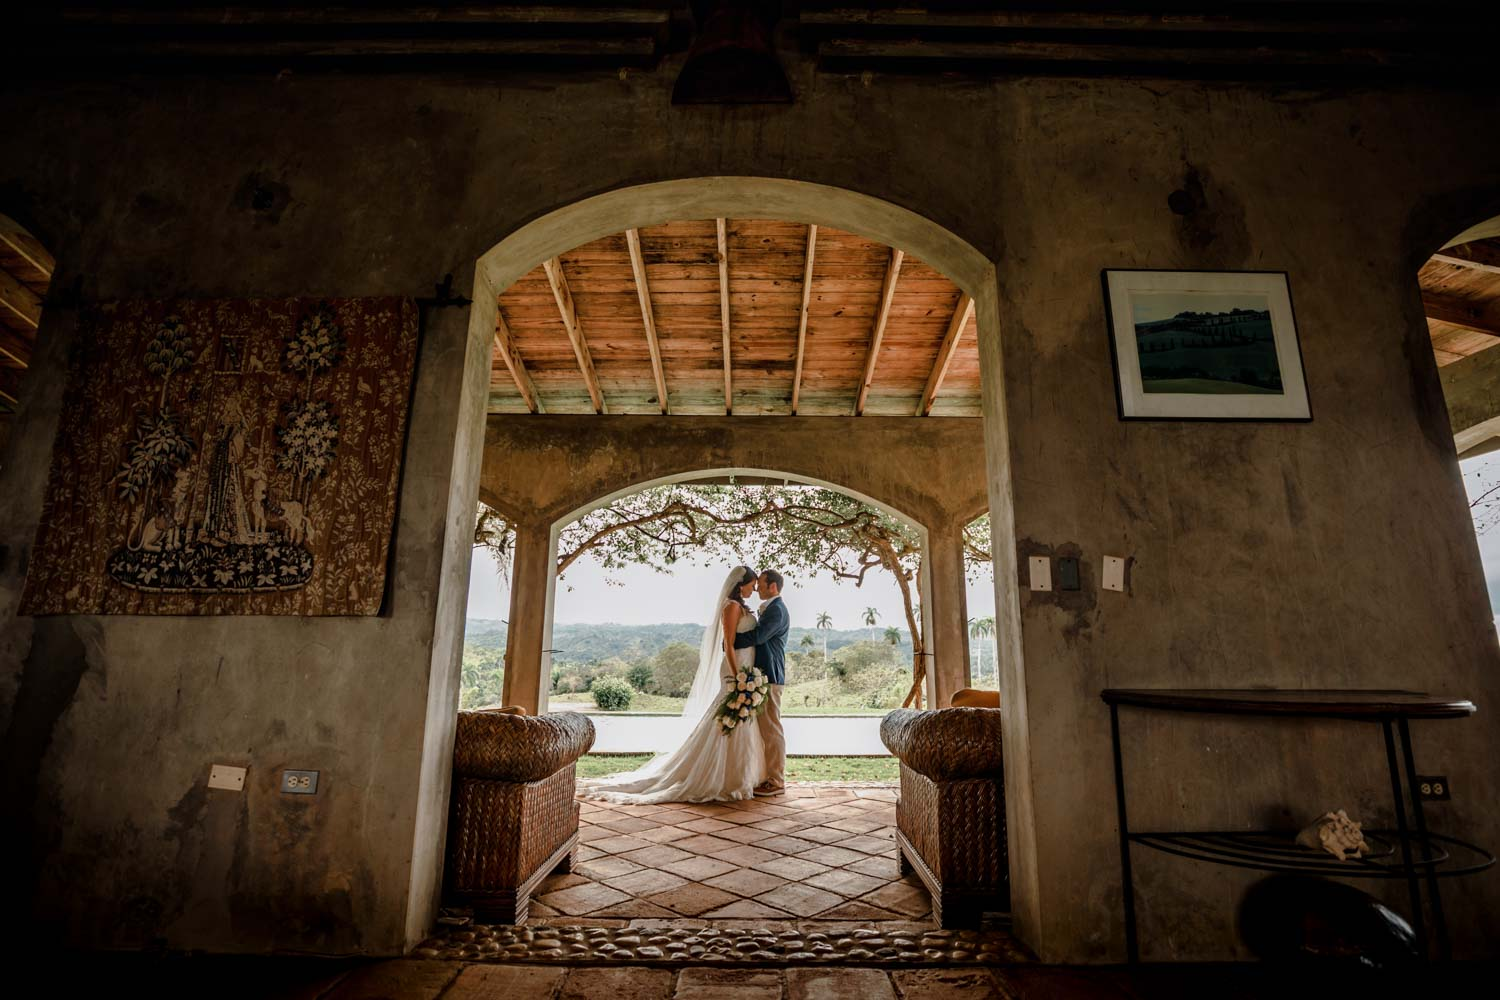 Bride and groom in arched doorway at Castle Club in Cabarete Dominican Republic after their wedding